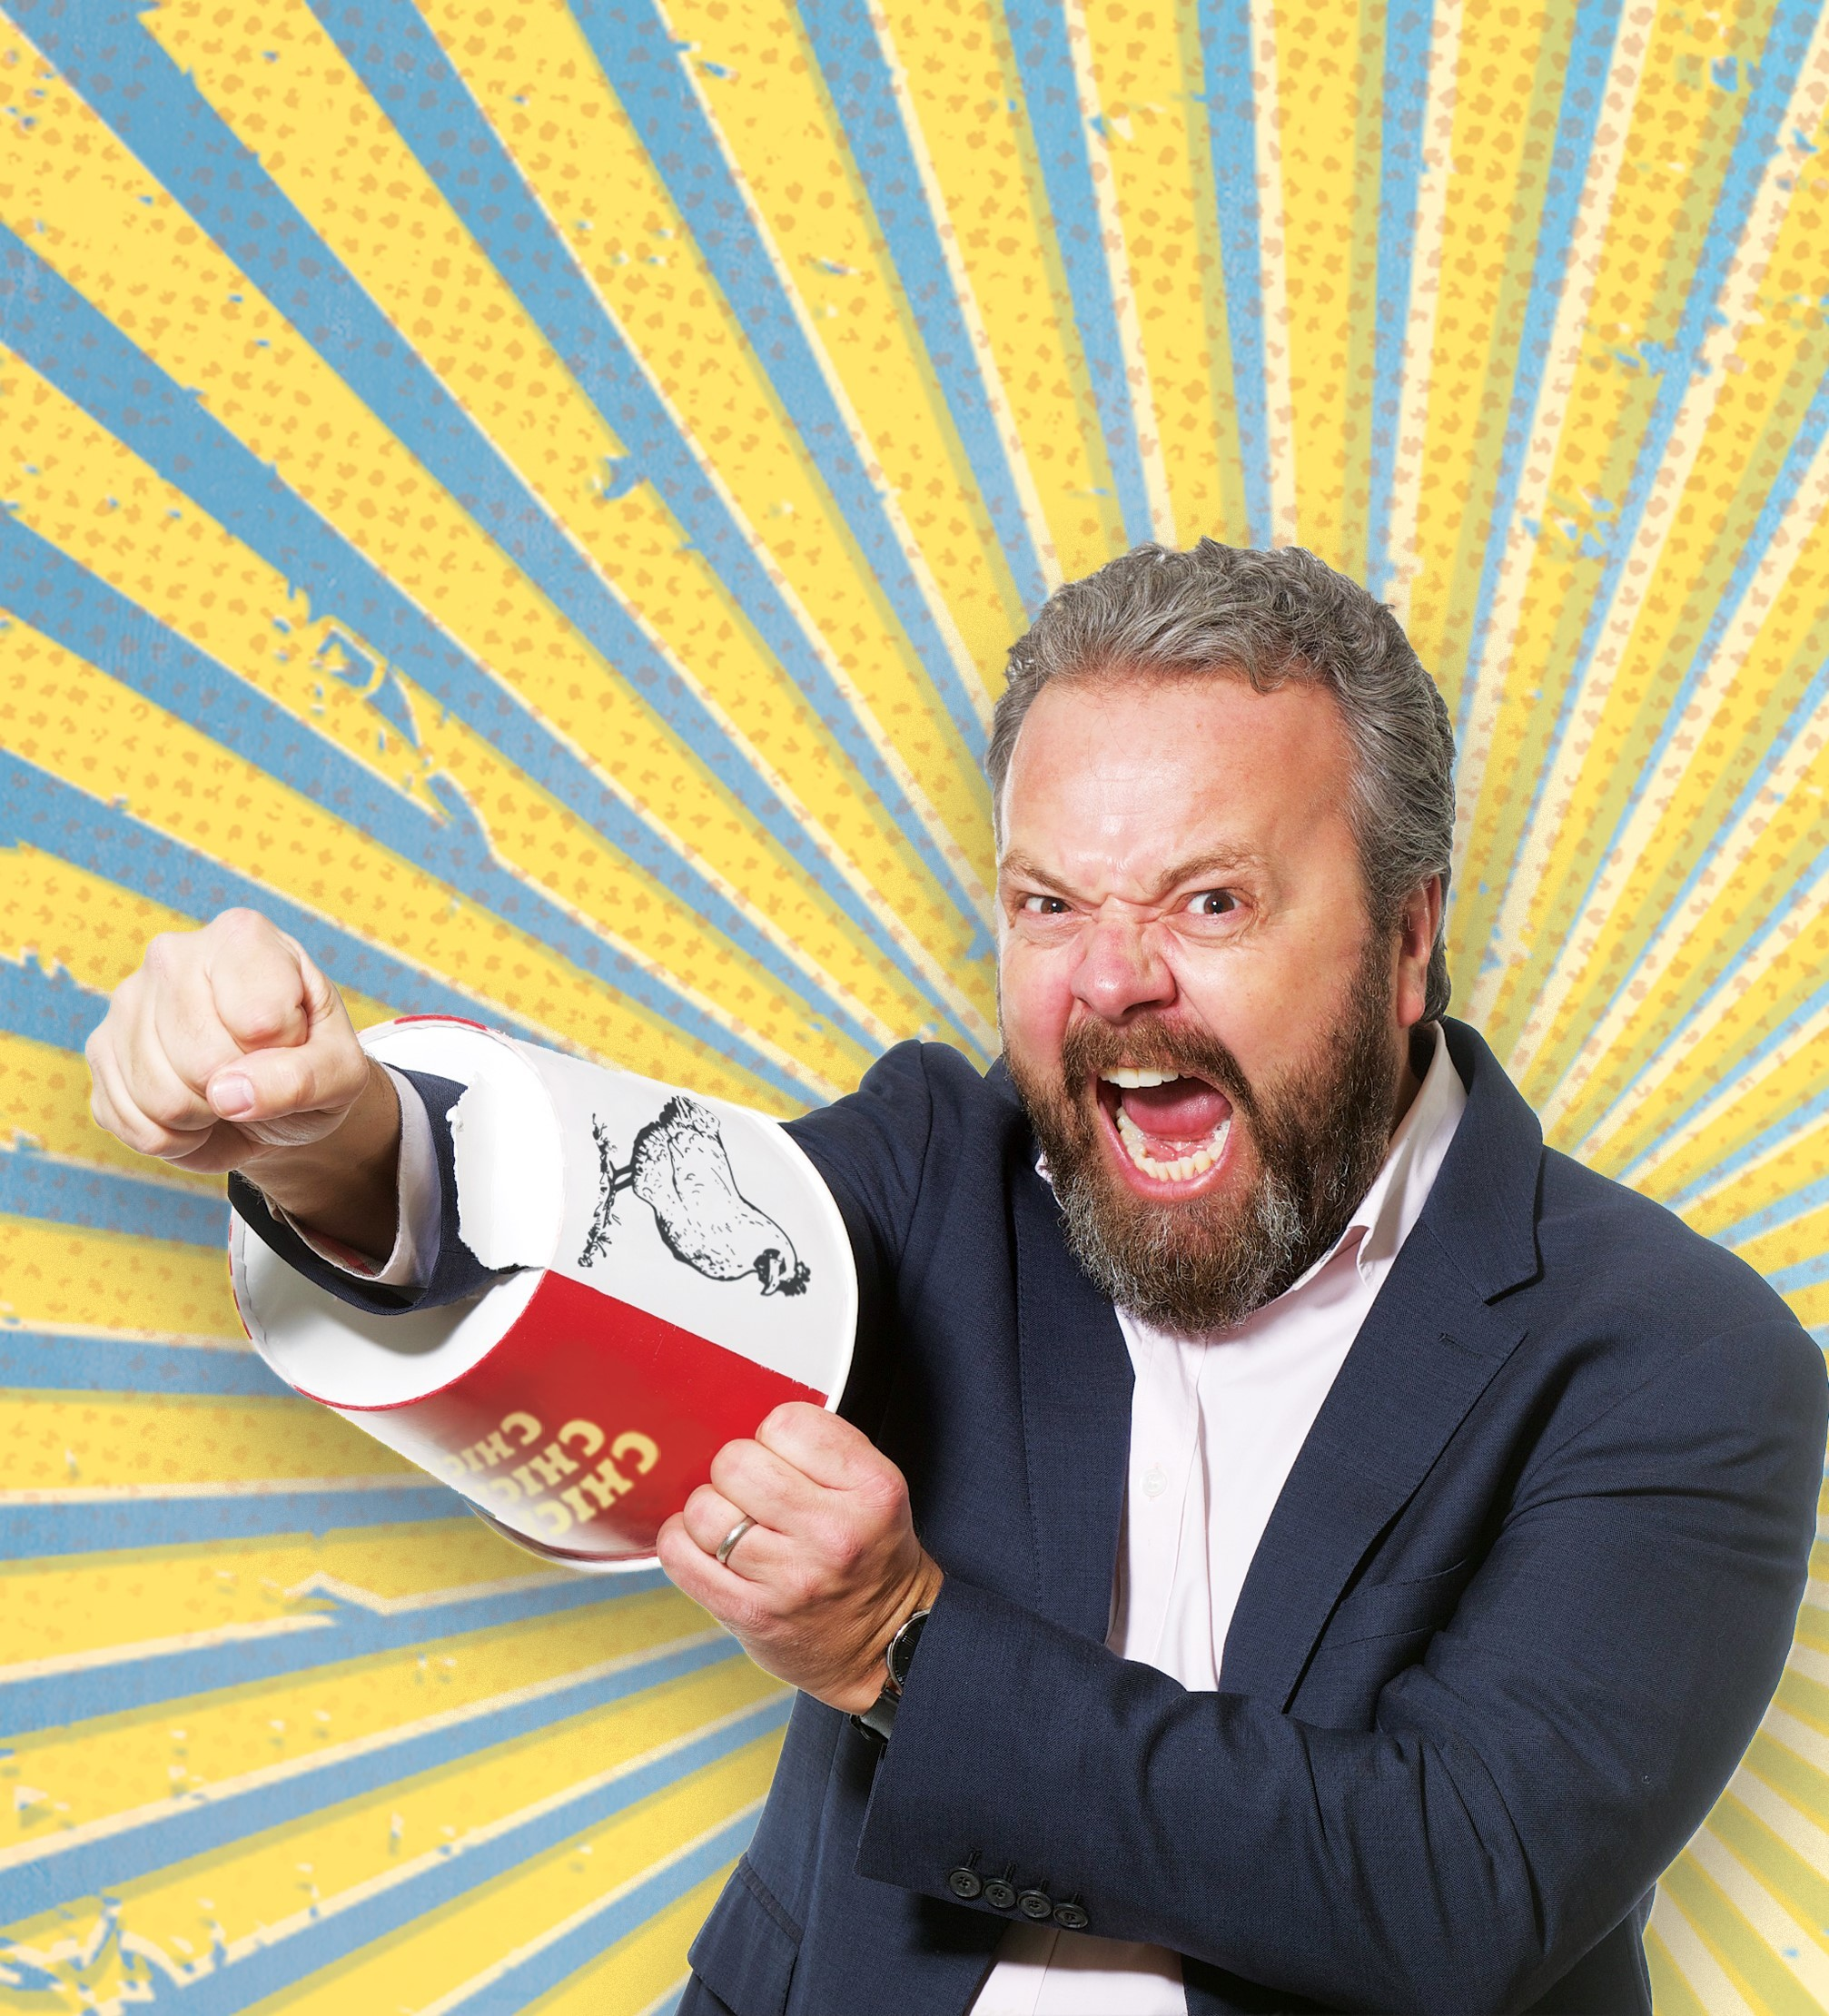 Wells comedy festival welcomes Hal Cruttenden